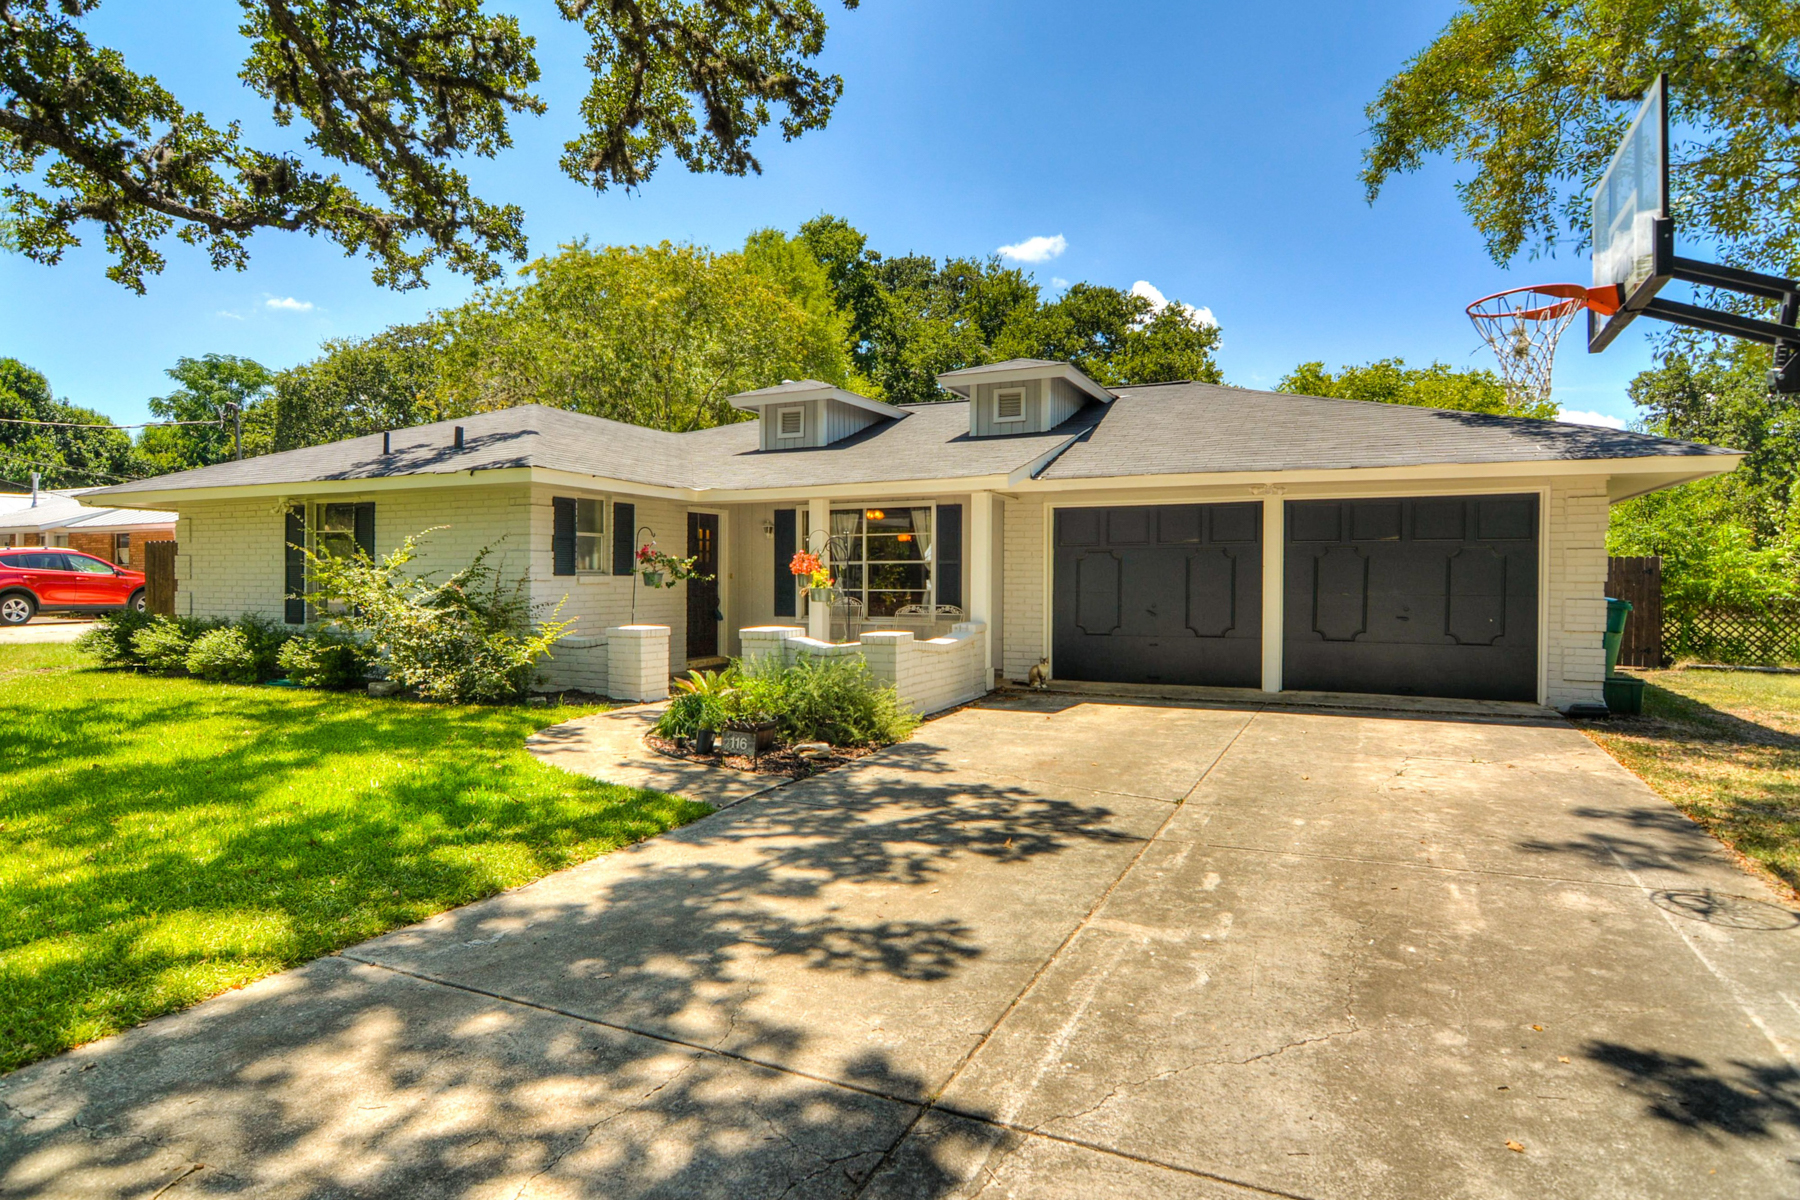 Single Family Home for Sale at Beautiful Gem in Downtown Boerne 116 Roeder Boerne, Texas 78006 United States